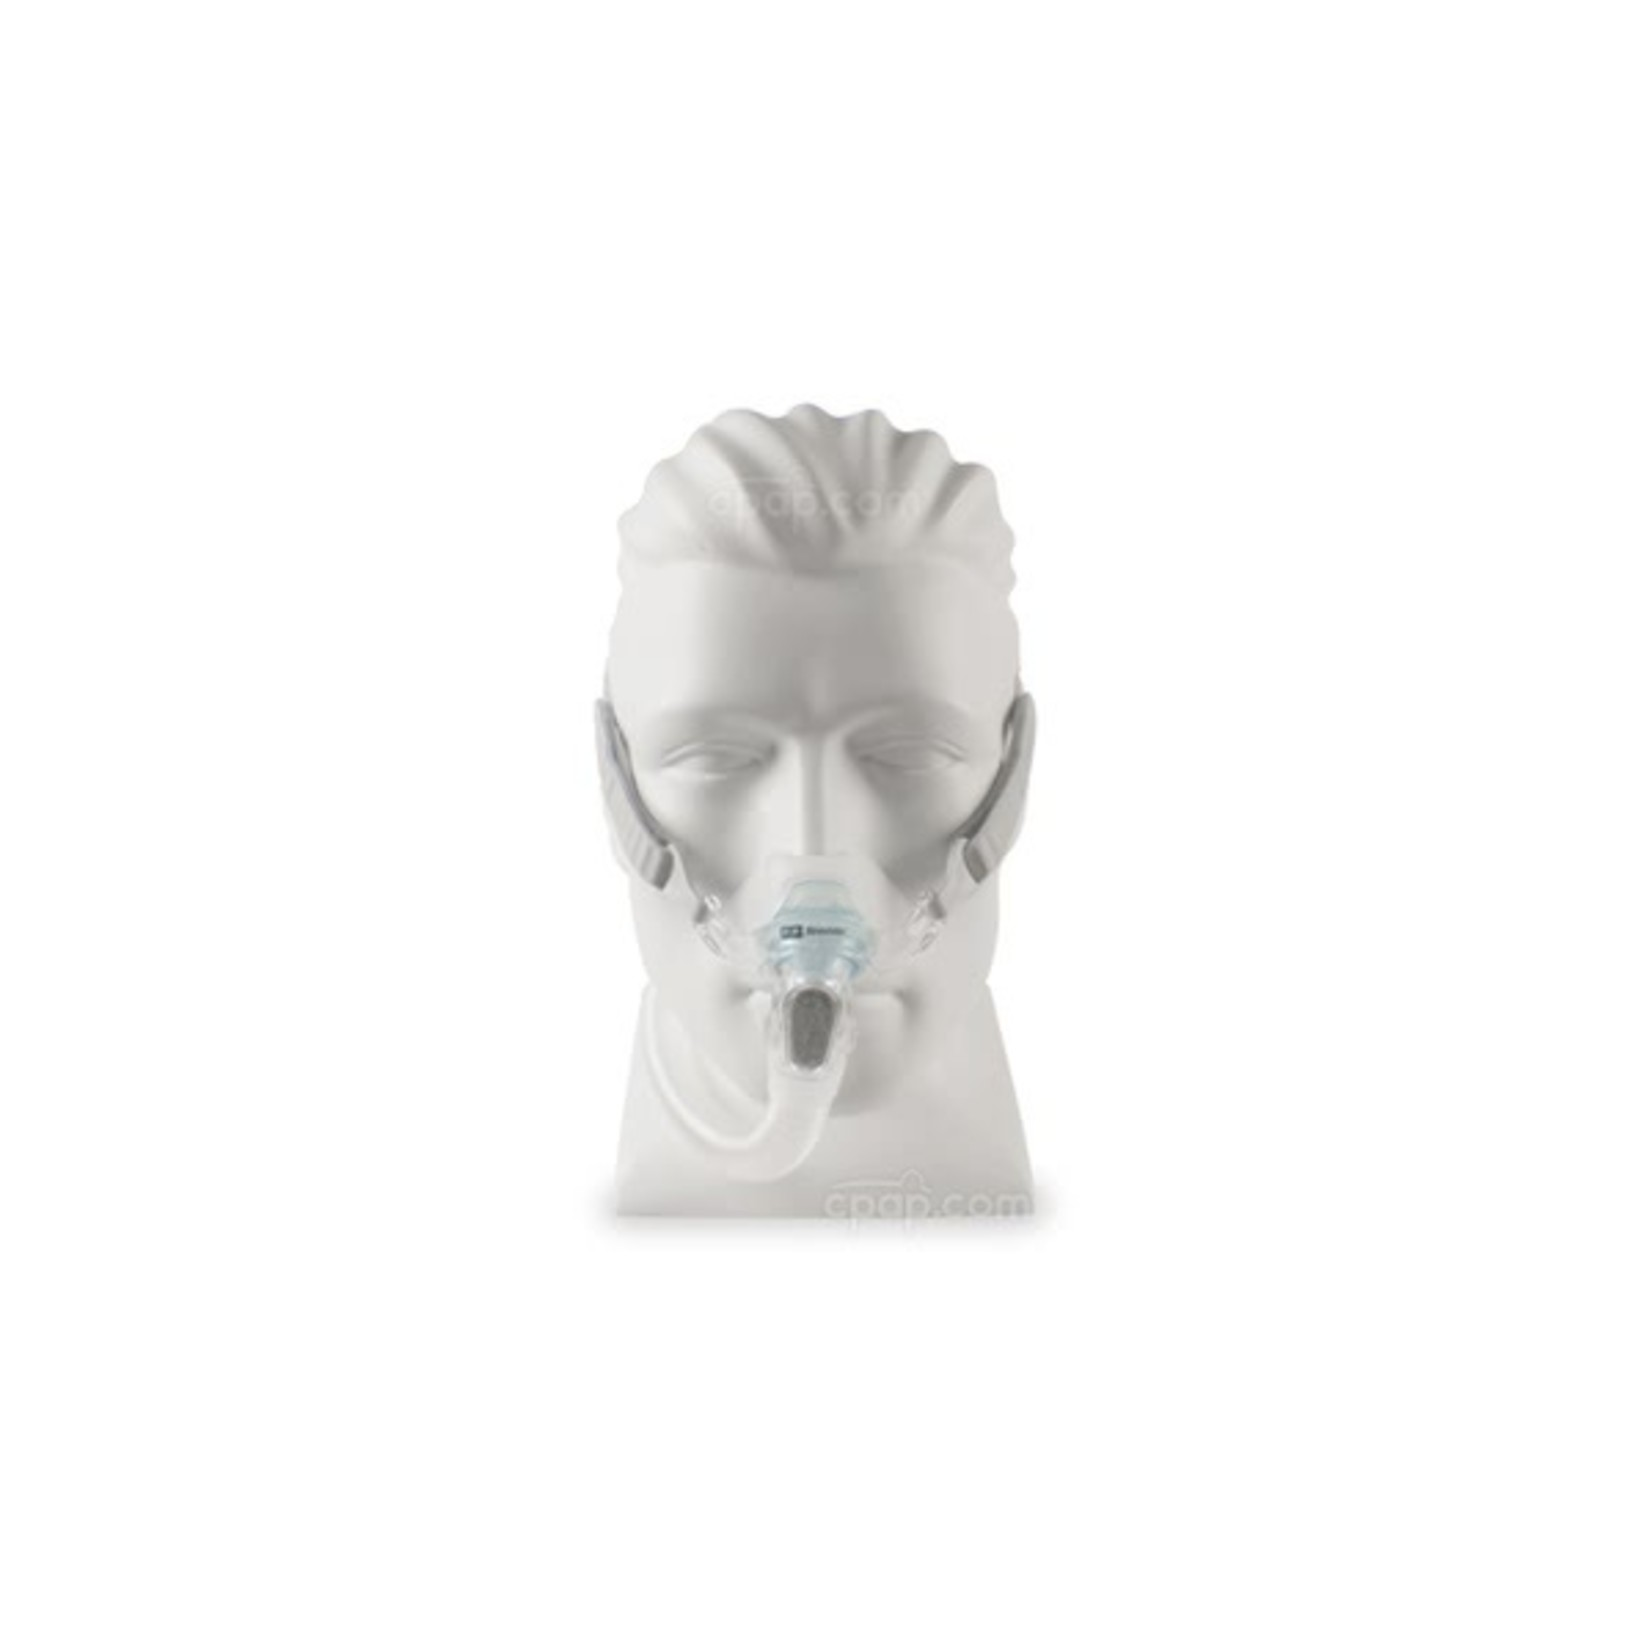 Fisher & Paykel Brevida Nasal Pillow CPAP Mask MD